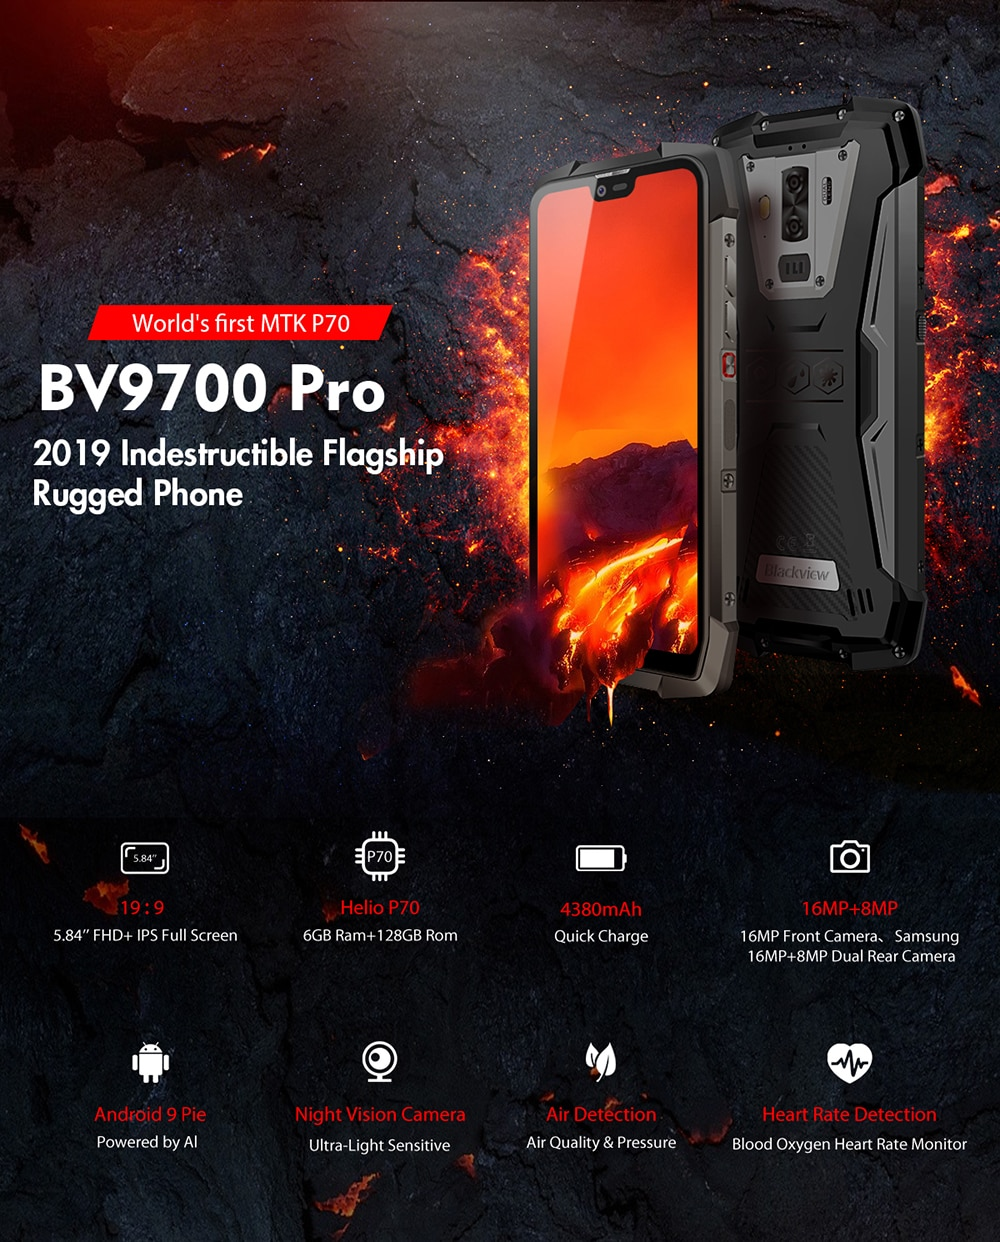 HTB1fOngcq1s3KVjSZFAq6x ZXXaM - Blackview BV9700 Pro IP68 Rugged Mobile Phone Helio P70 Octa Core 6GB 128GB Android 9.0 16MP 8MP Night Vision Camera Smartphone